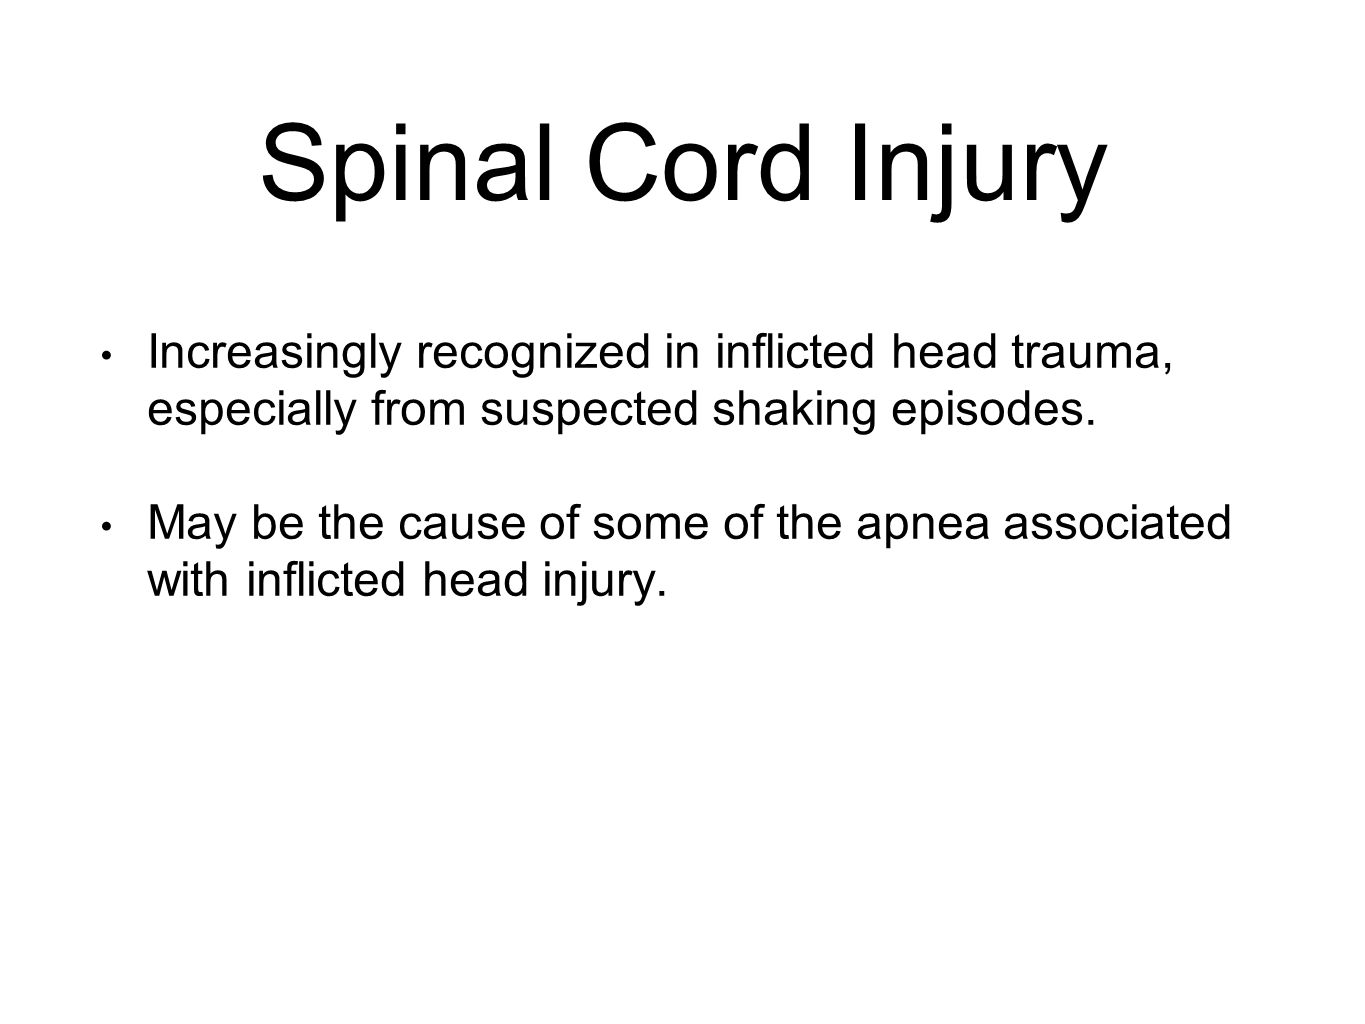 Spinal Cord Injury Increasingly recognized in inflicted head trauma, especially from suspected shaking episodes. May be the cause of some of the apnea